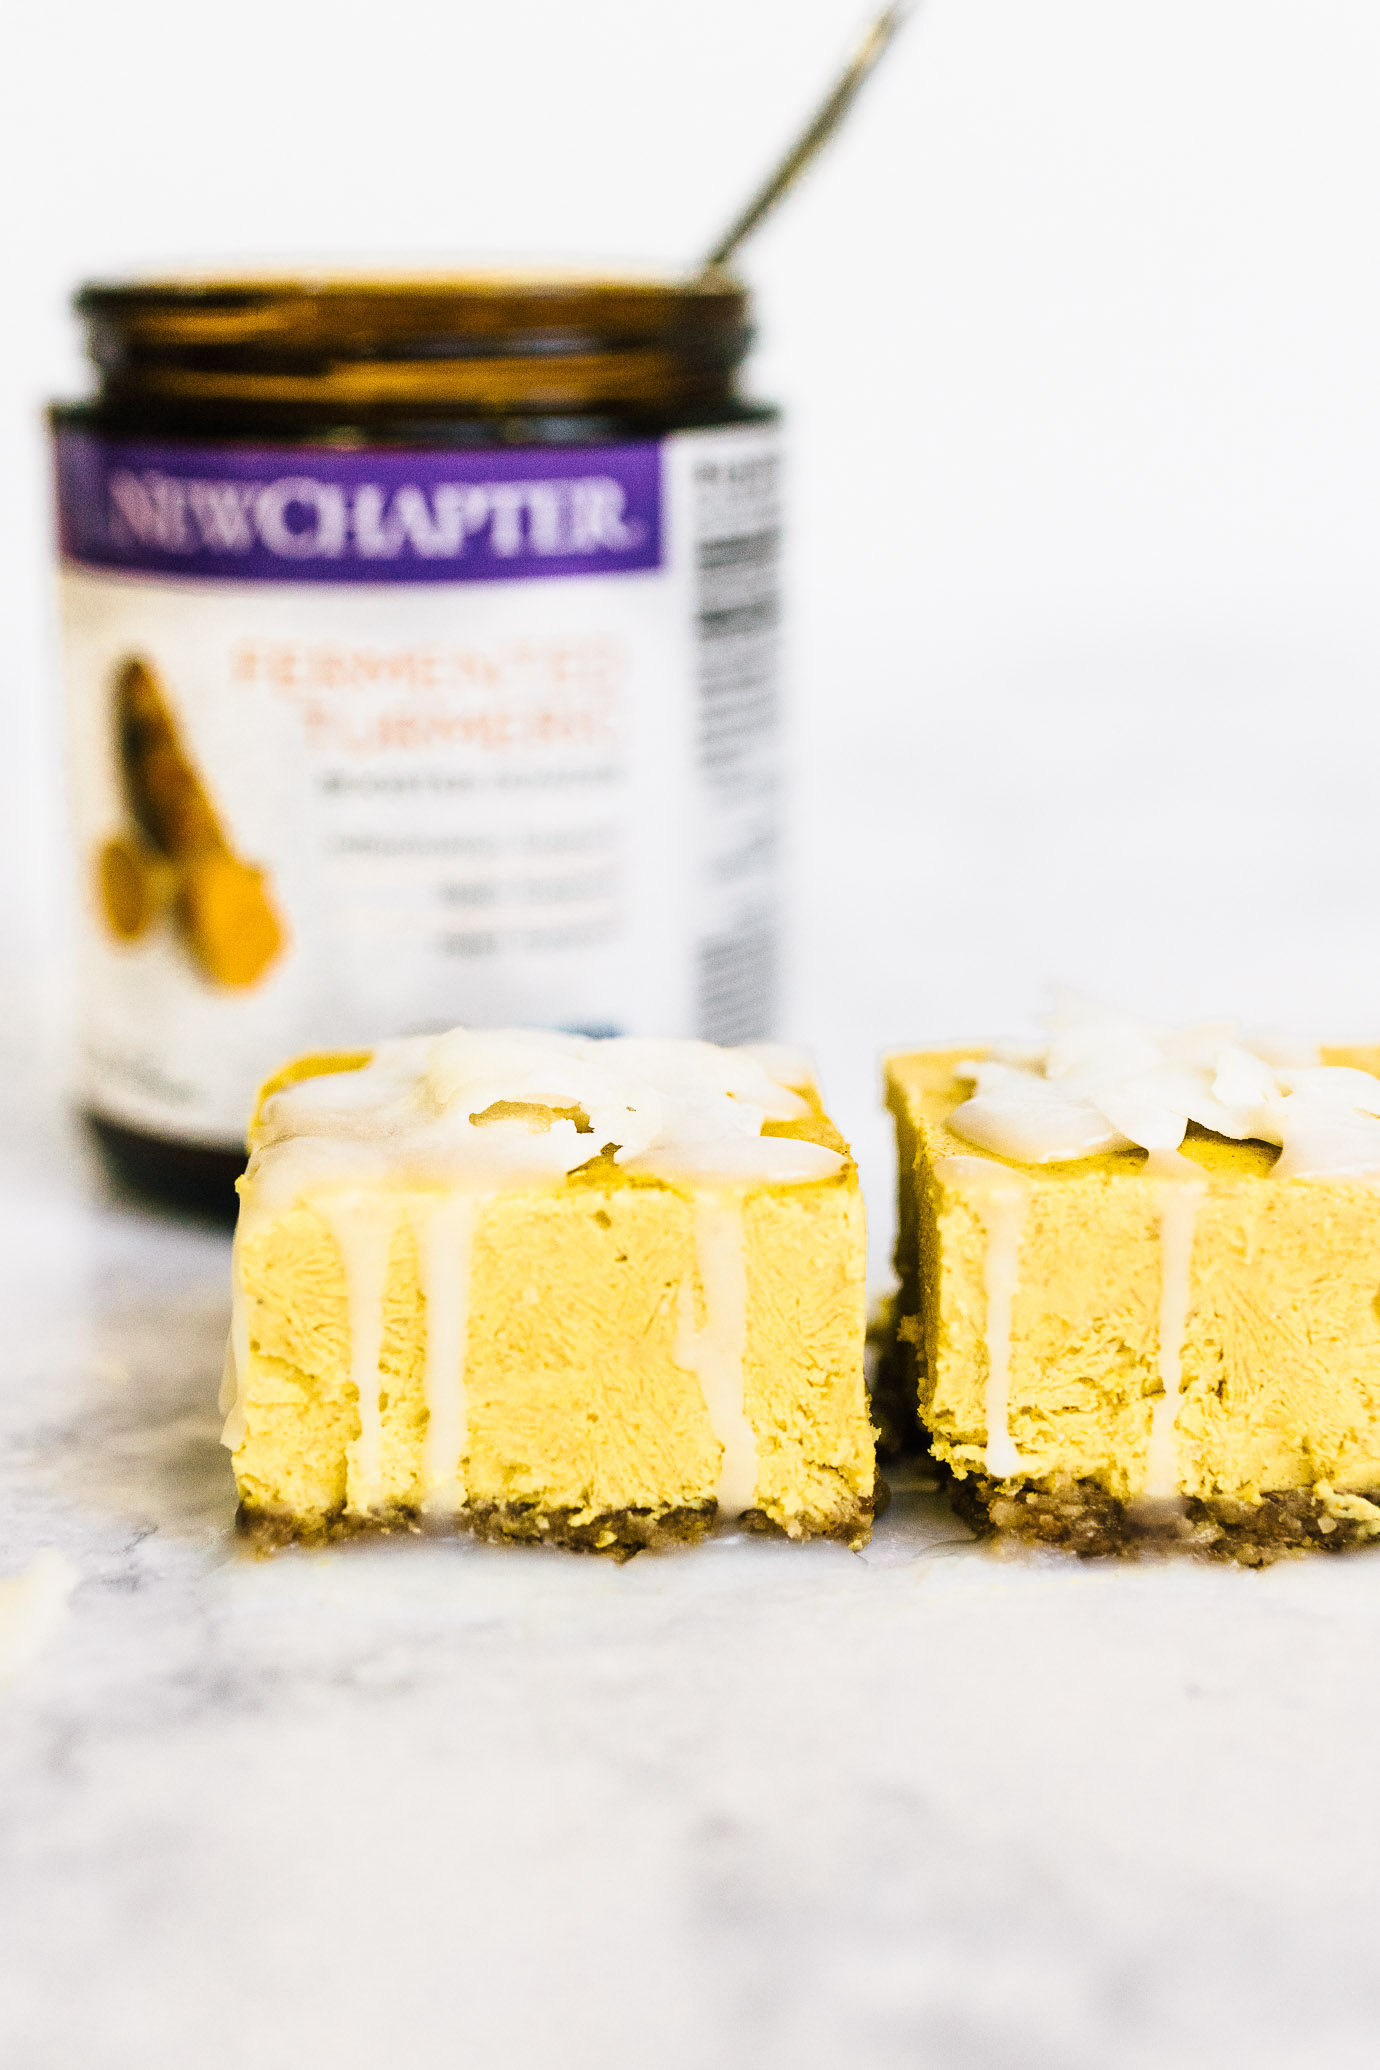 Golden Milk Cheesecake Bars with New Chapter Turmeric Booster